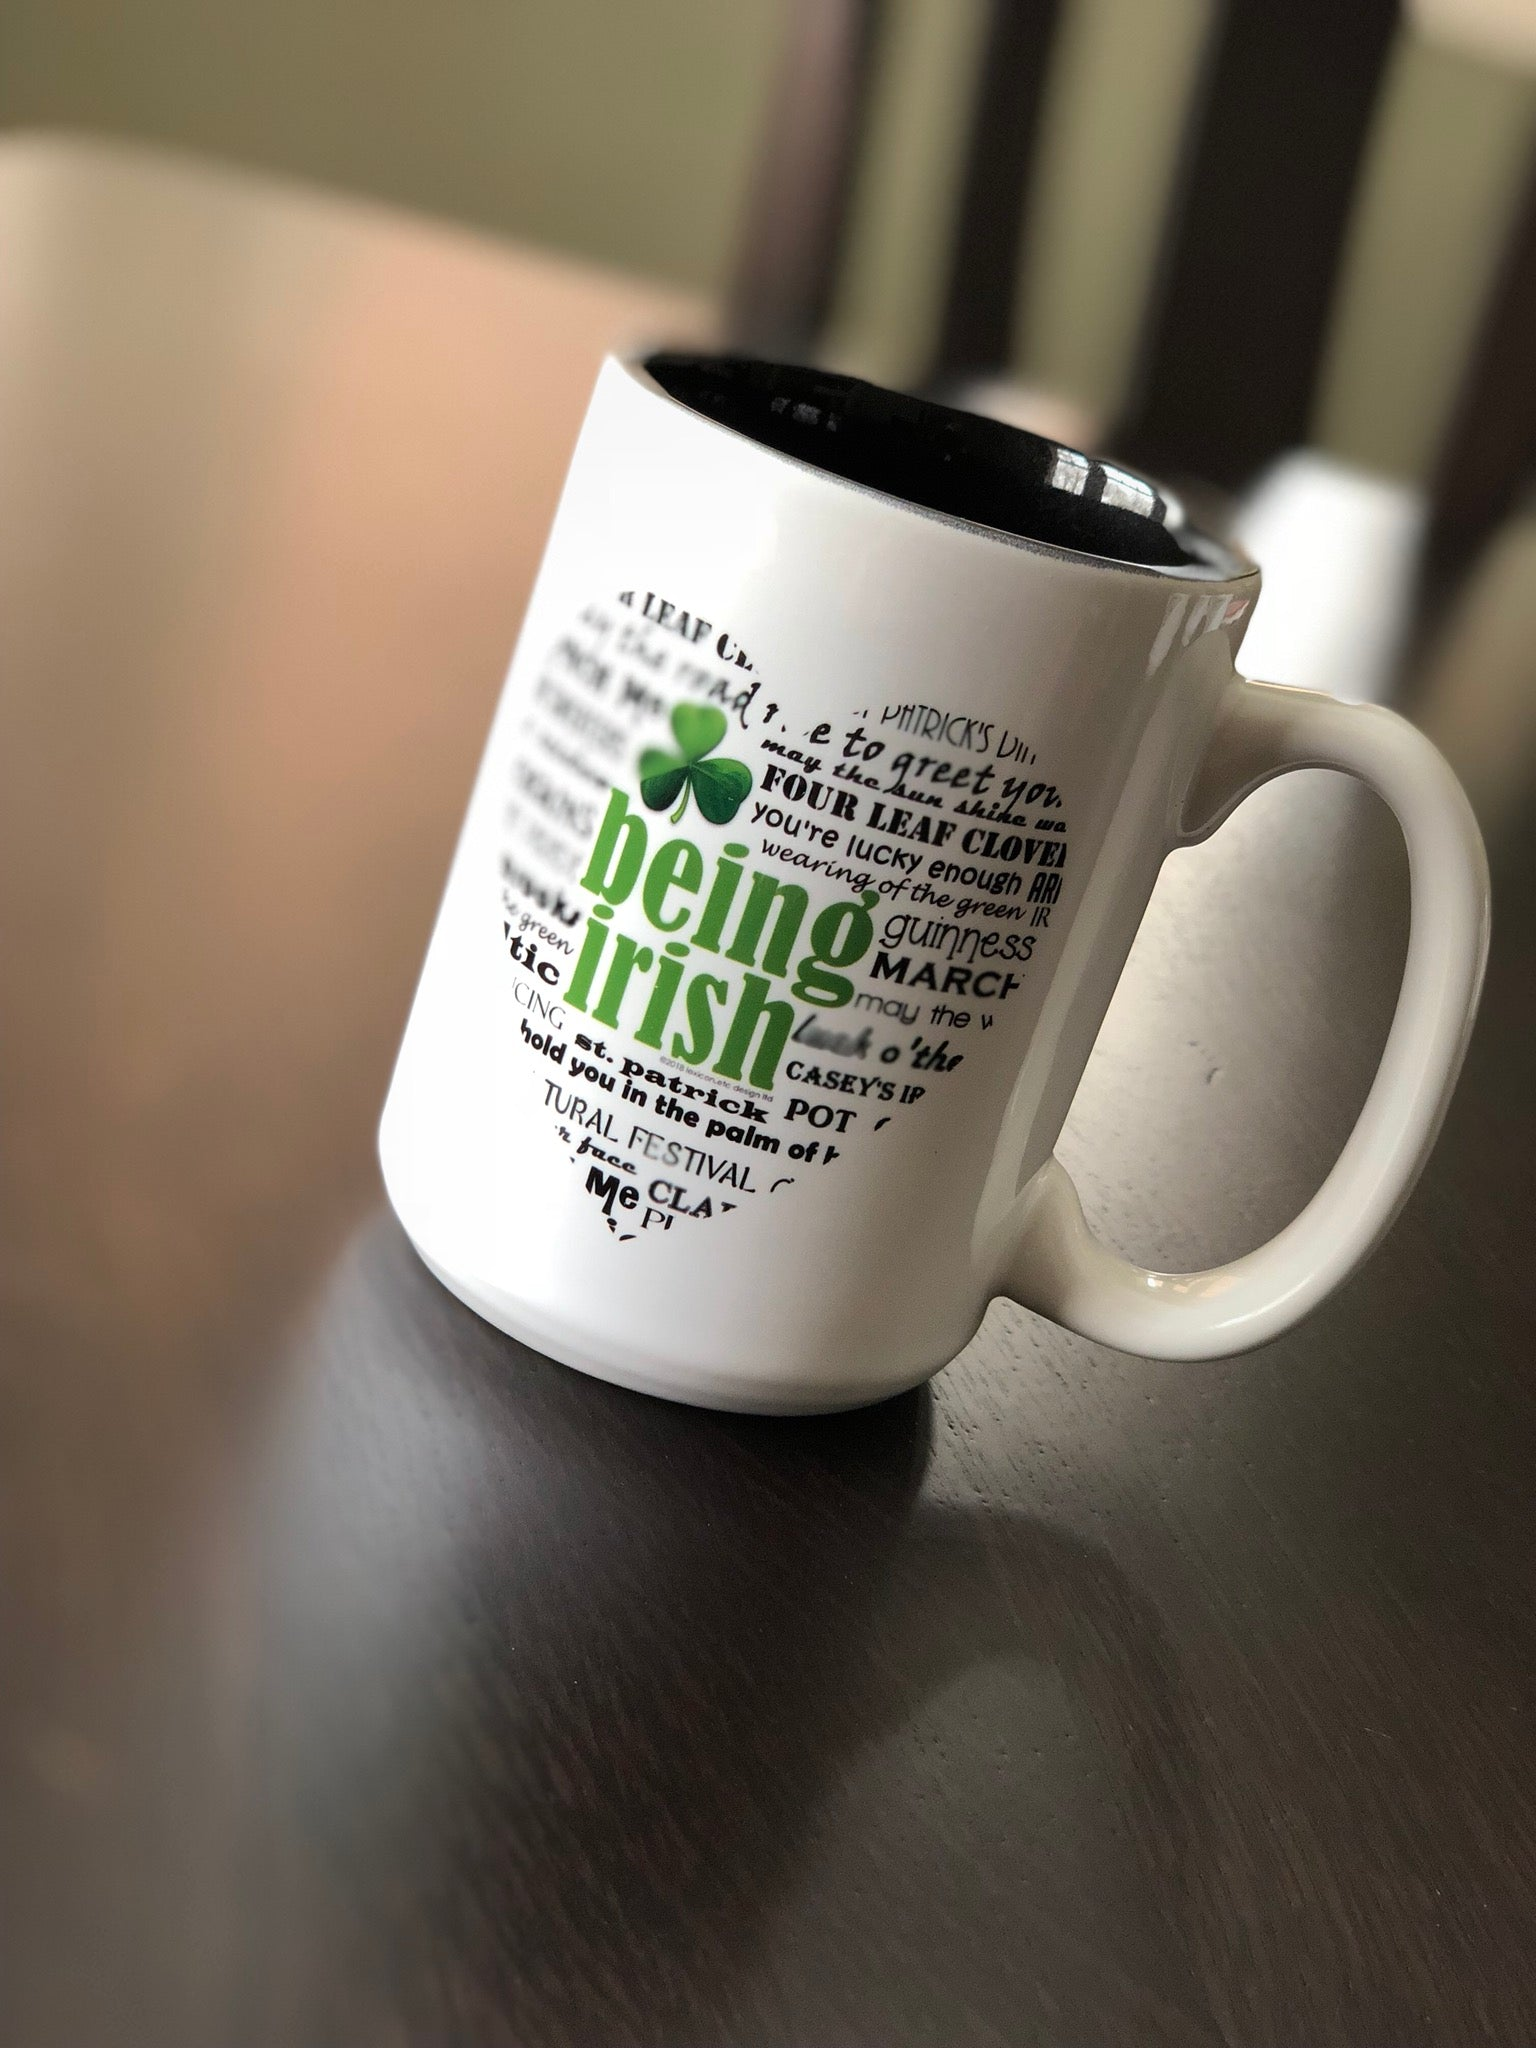 Irish Handmade Coffee Mug. Cleveland, Ohio.